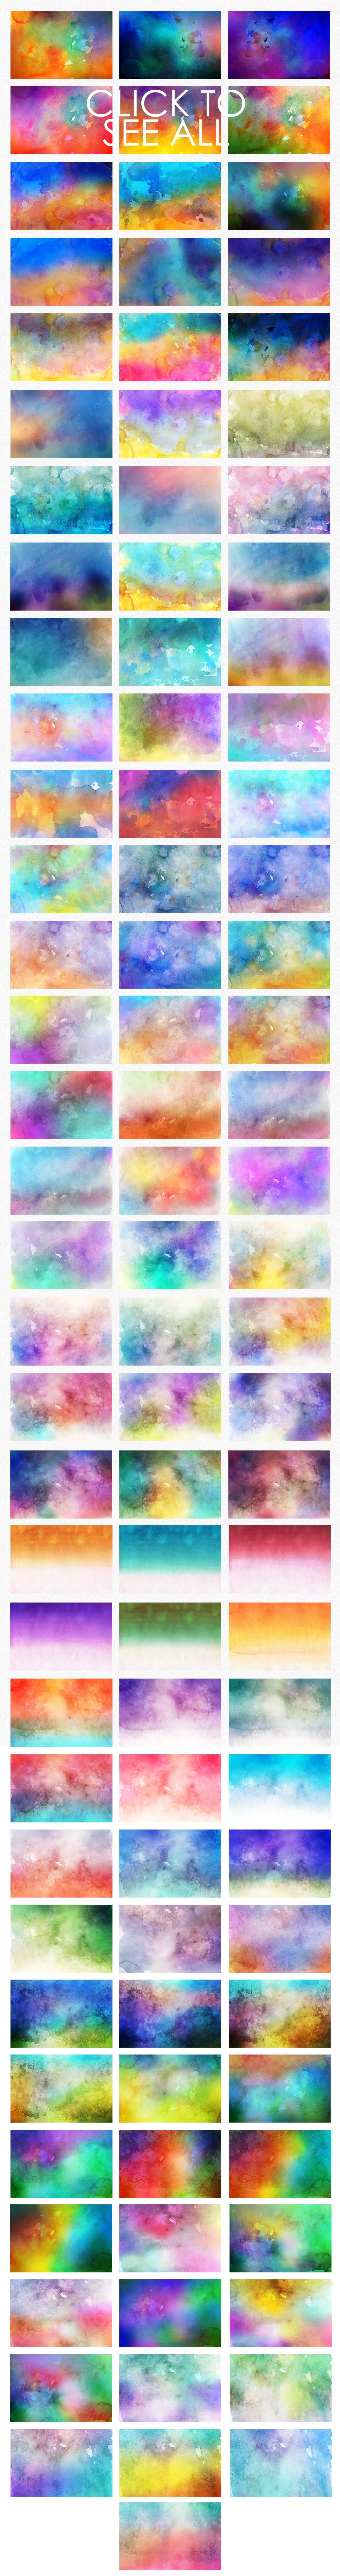 540+ Watercolor Backgrounds Bundle - 544 Items. Only $18! - 100 watercolor backgrounds textures prev o